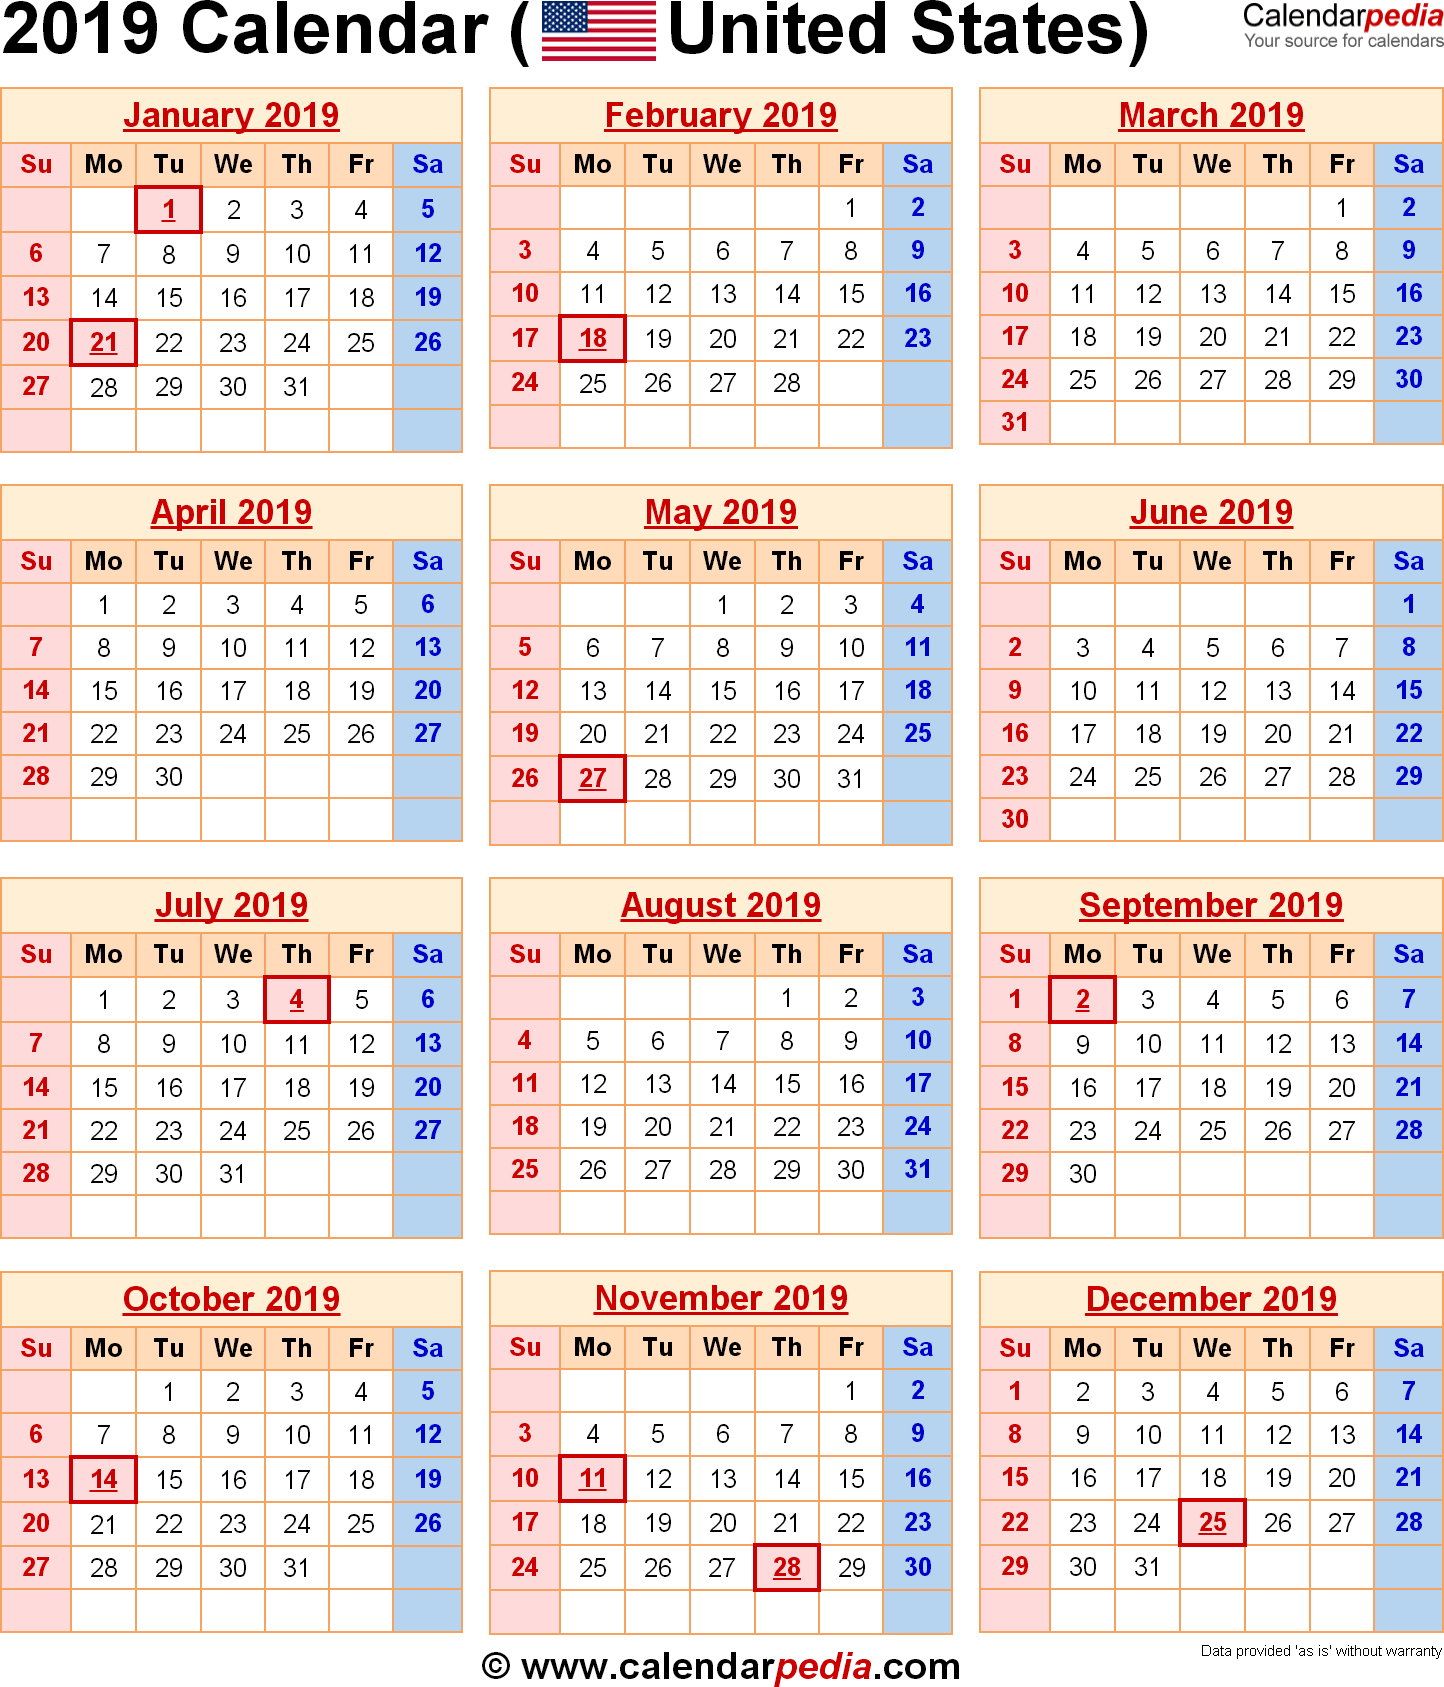 2019 Calendar United States | Us Federal Holidays | 2019 Calendar Us Calendar 2019 United States